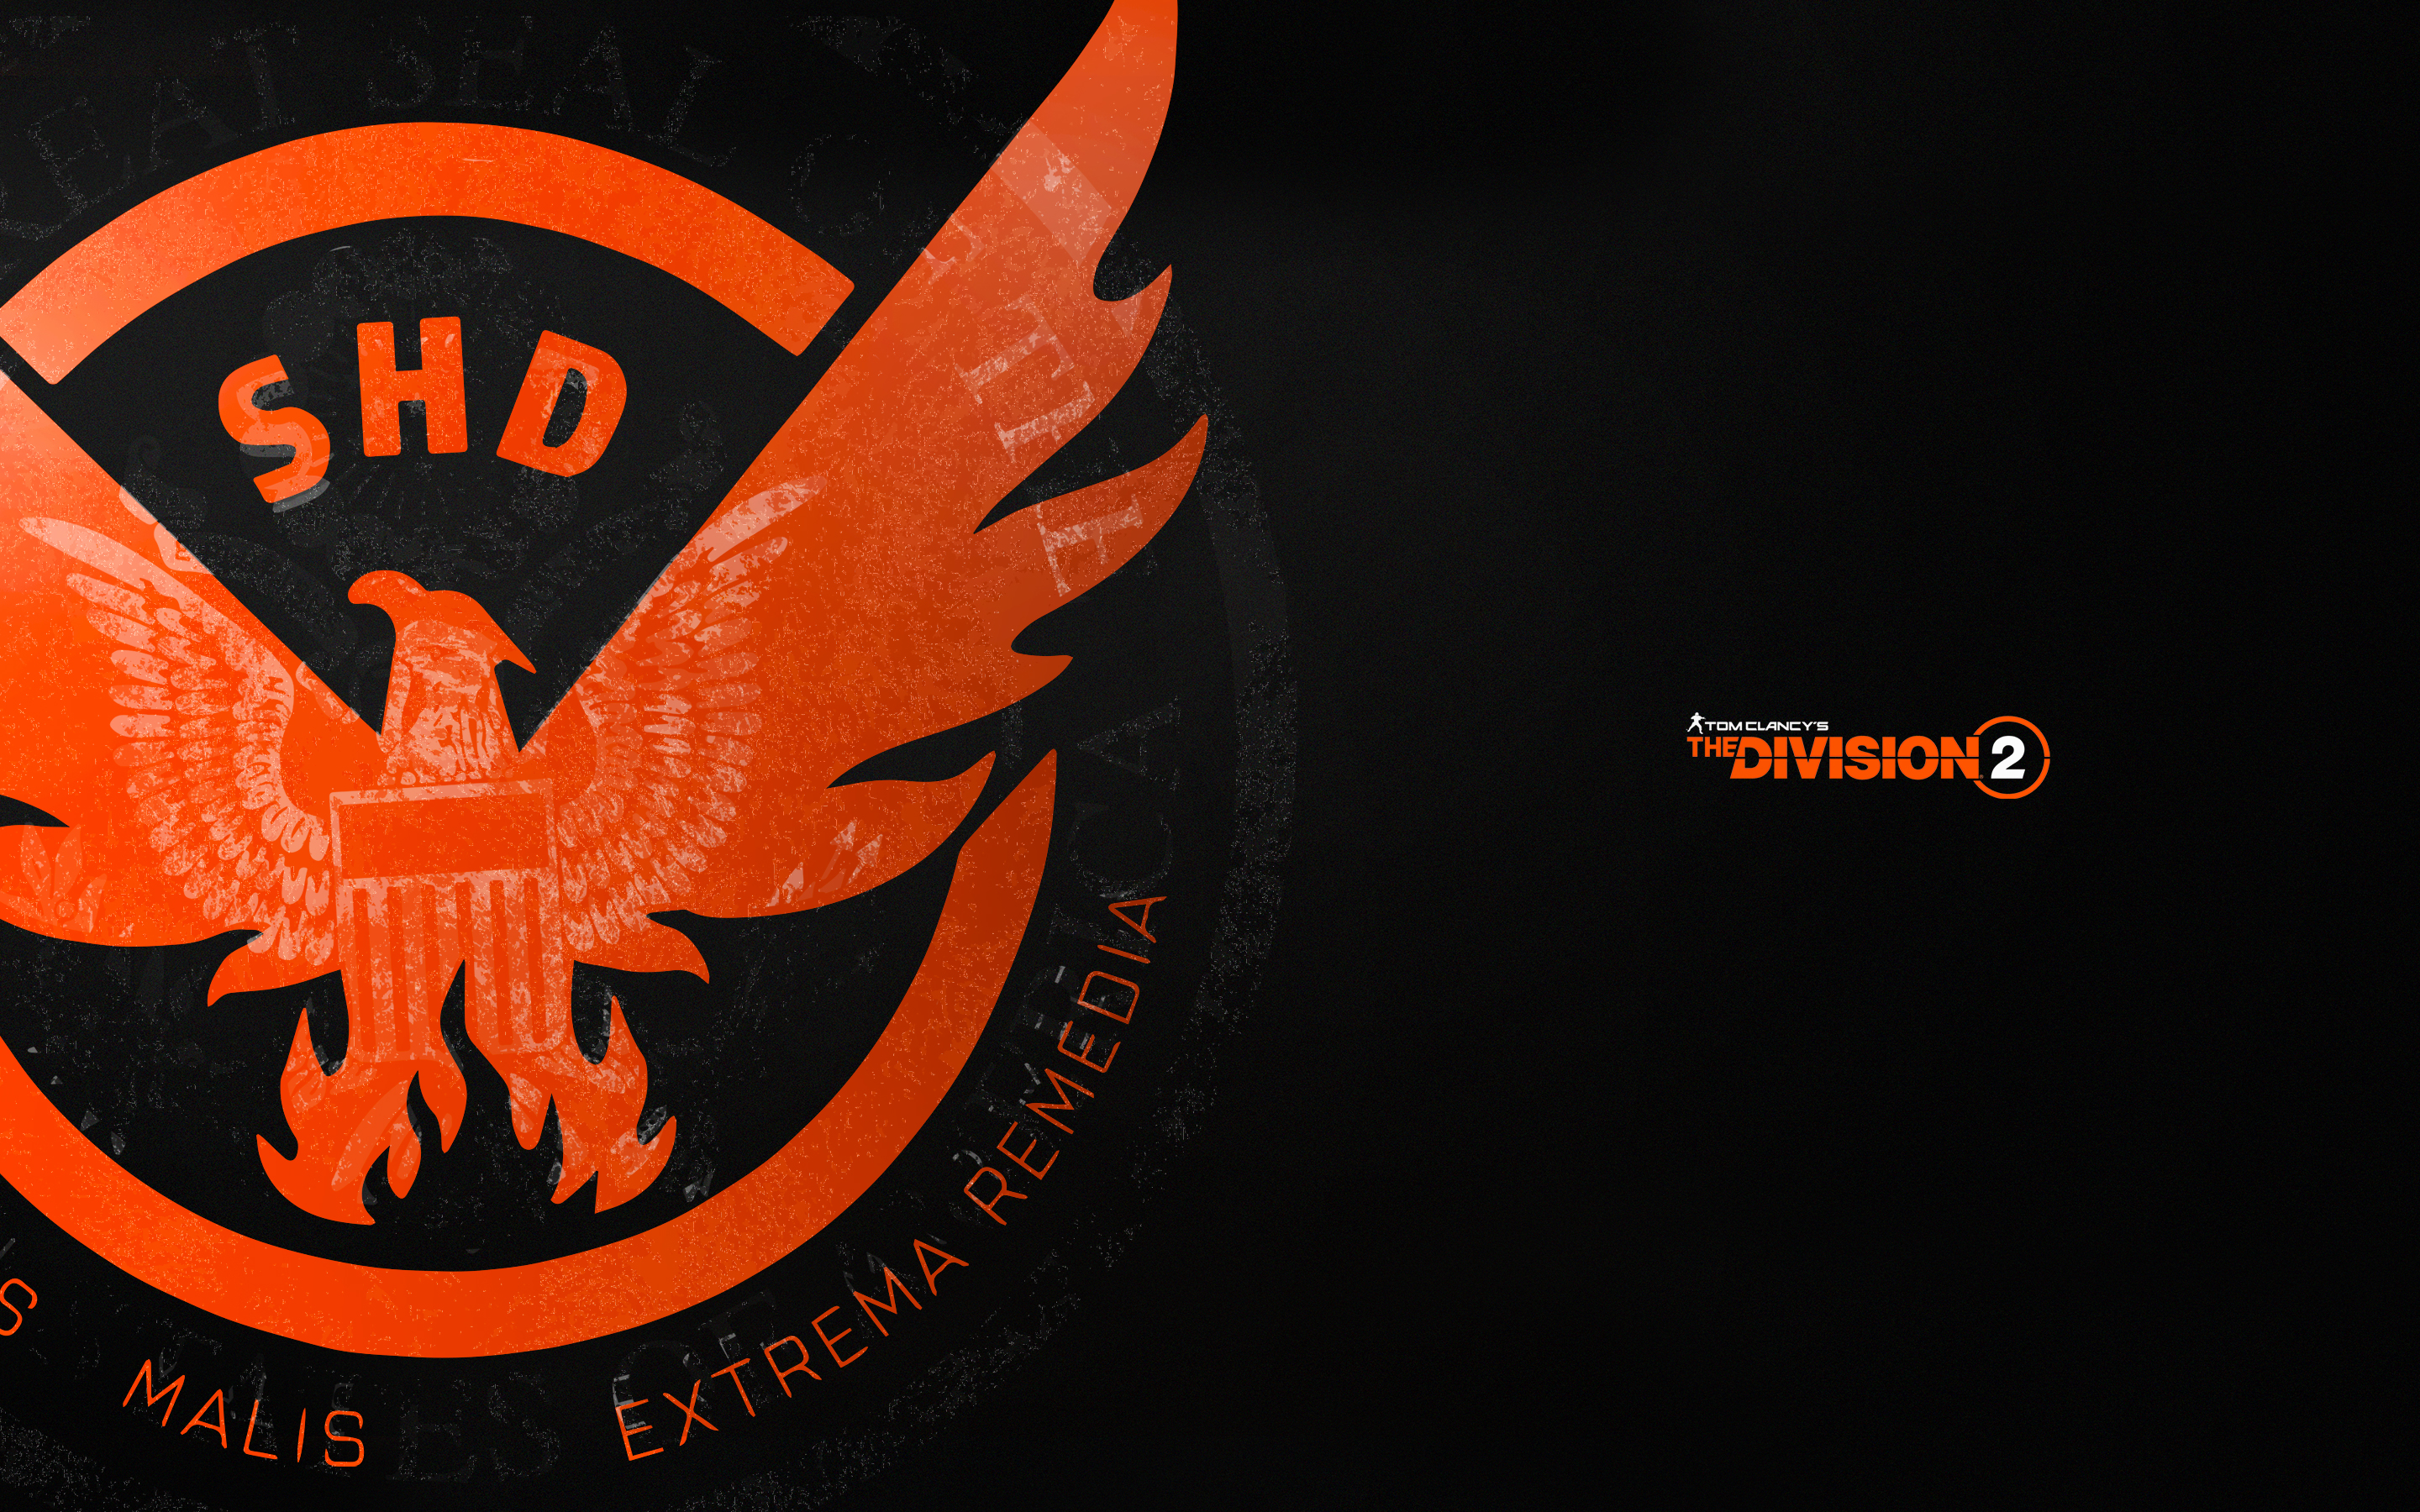 The Division 2 Wallpapers Desktop Mobile Division 2 Wallpapers